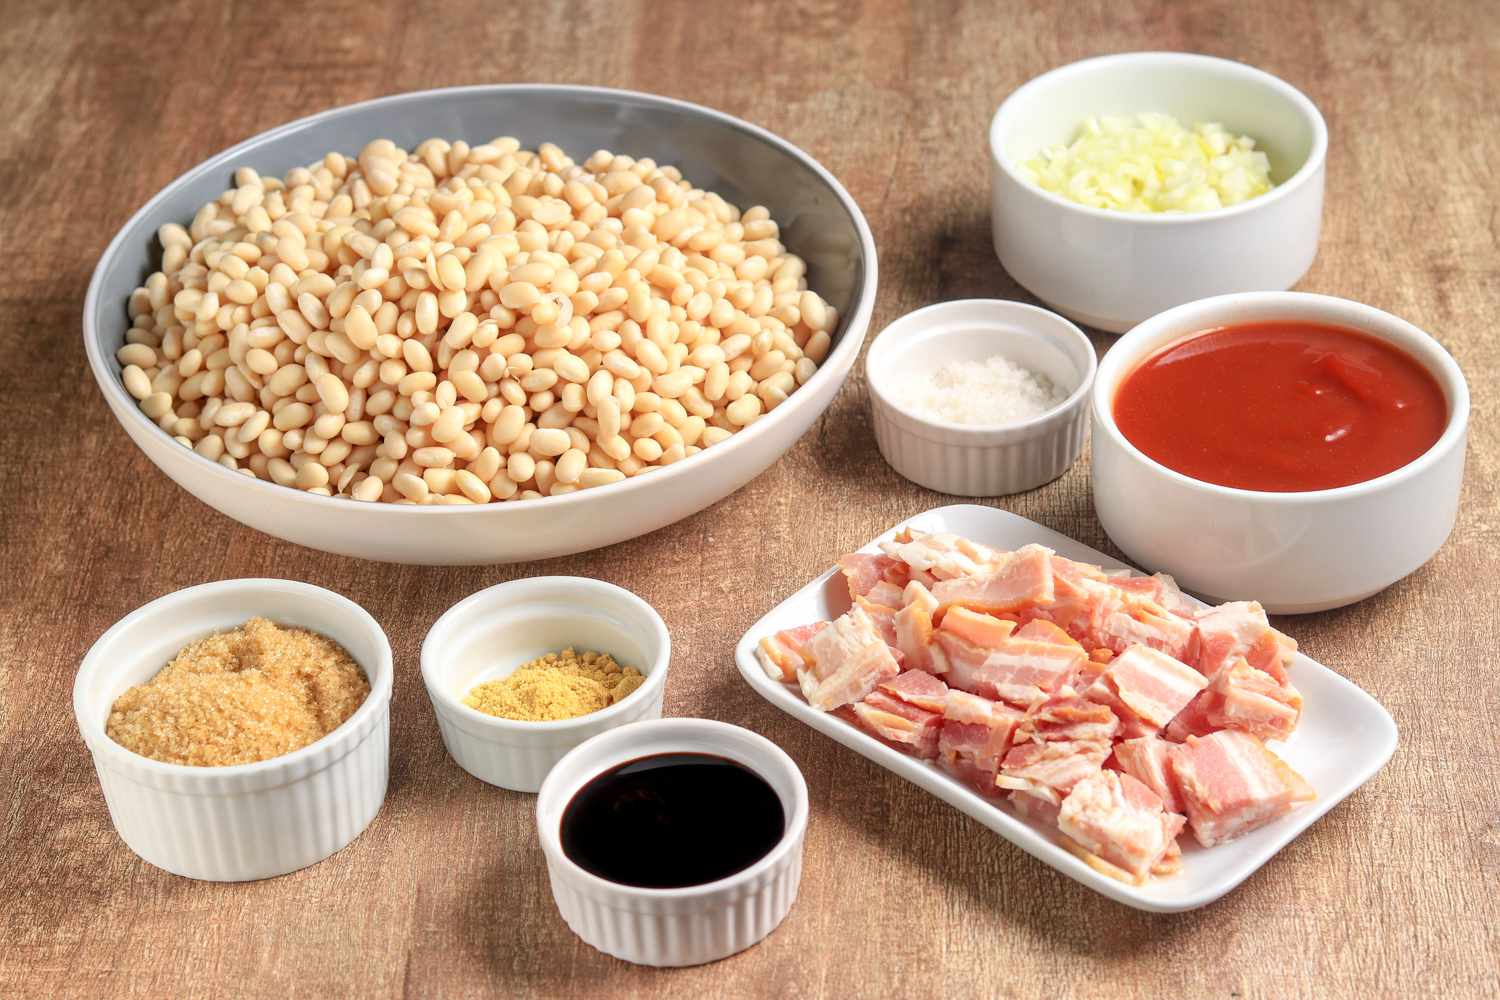 Homemade baked beans ingredients